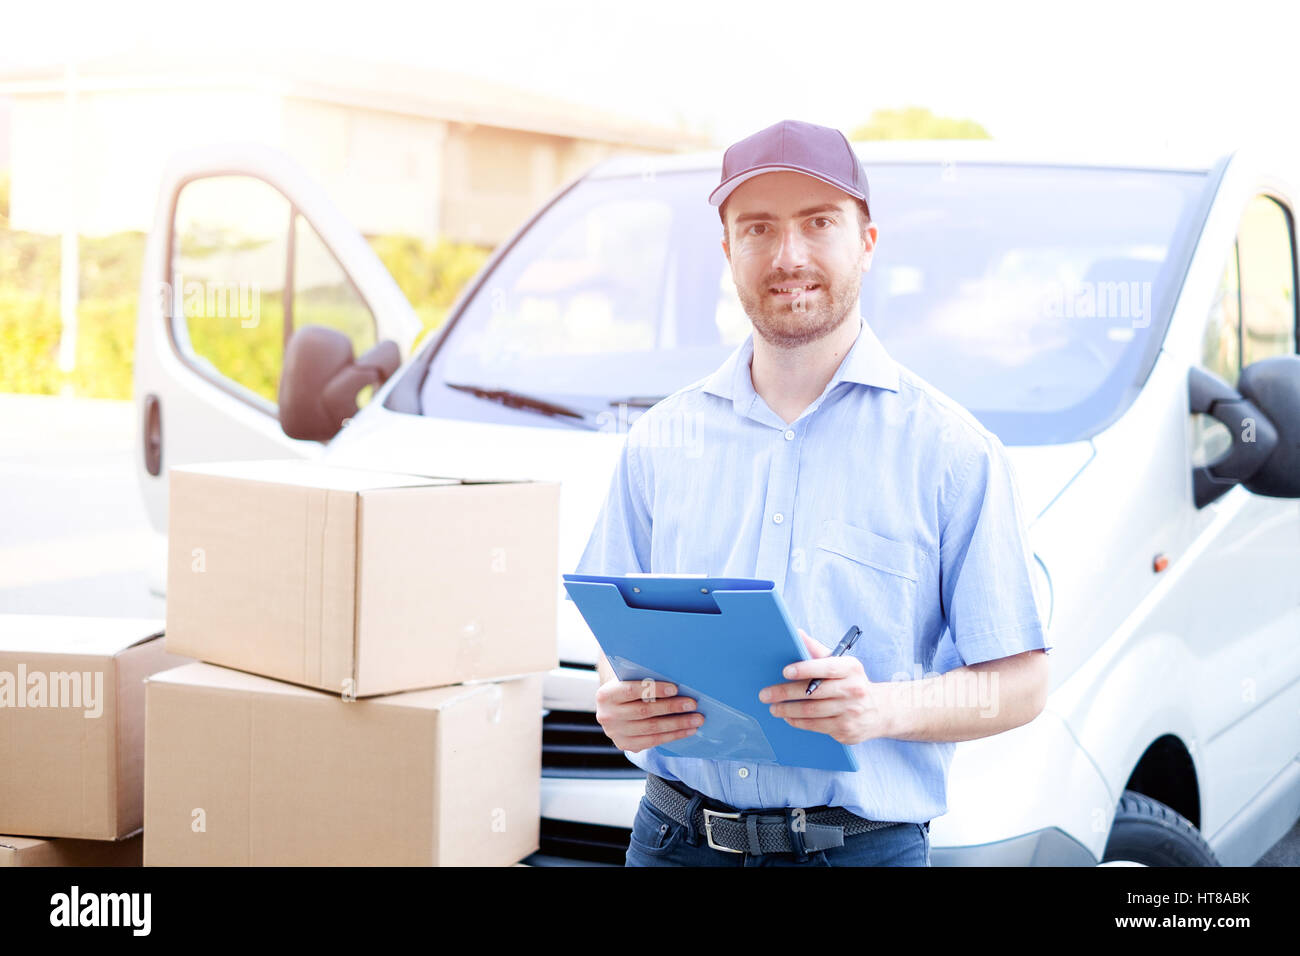 Portrait of confidence express courier next to his delivery van - Stock Image